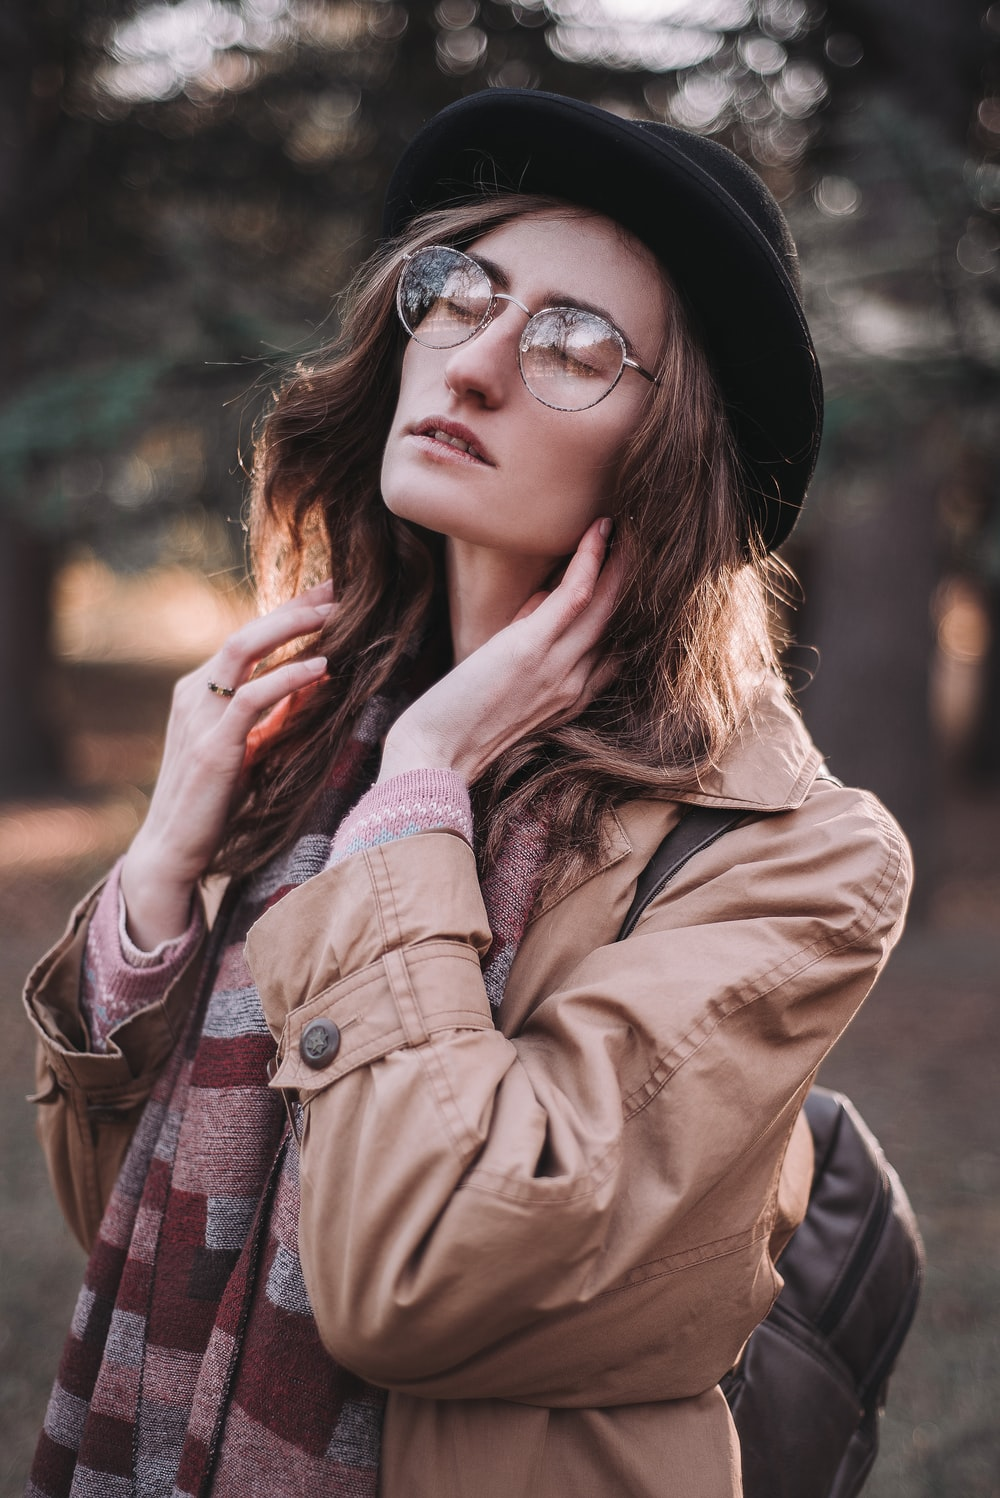 woman in brown leather jacket wearing black sunglasses